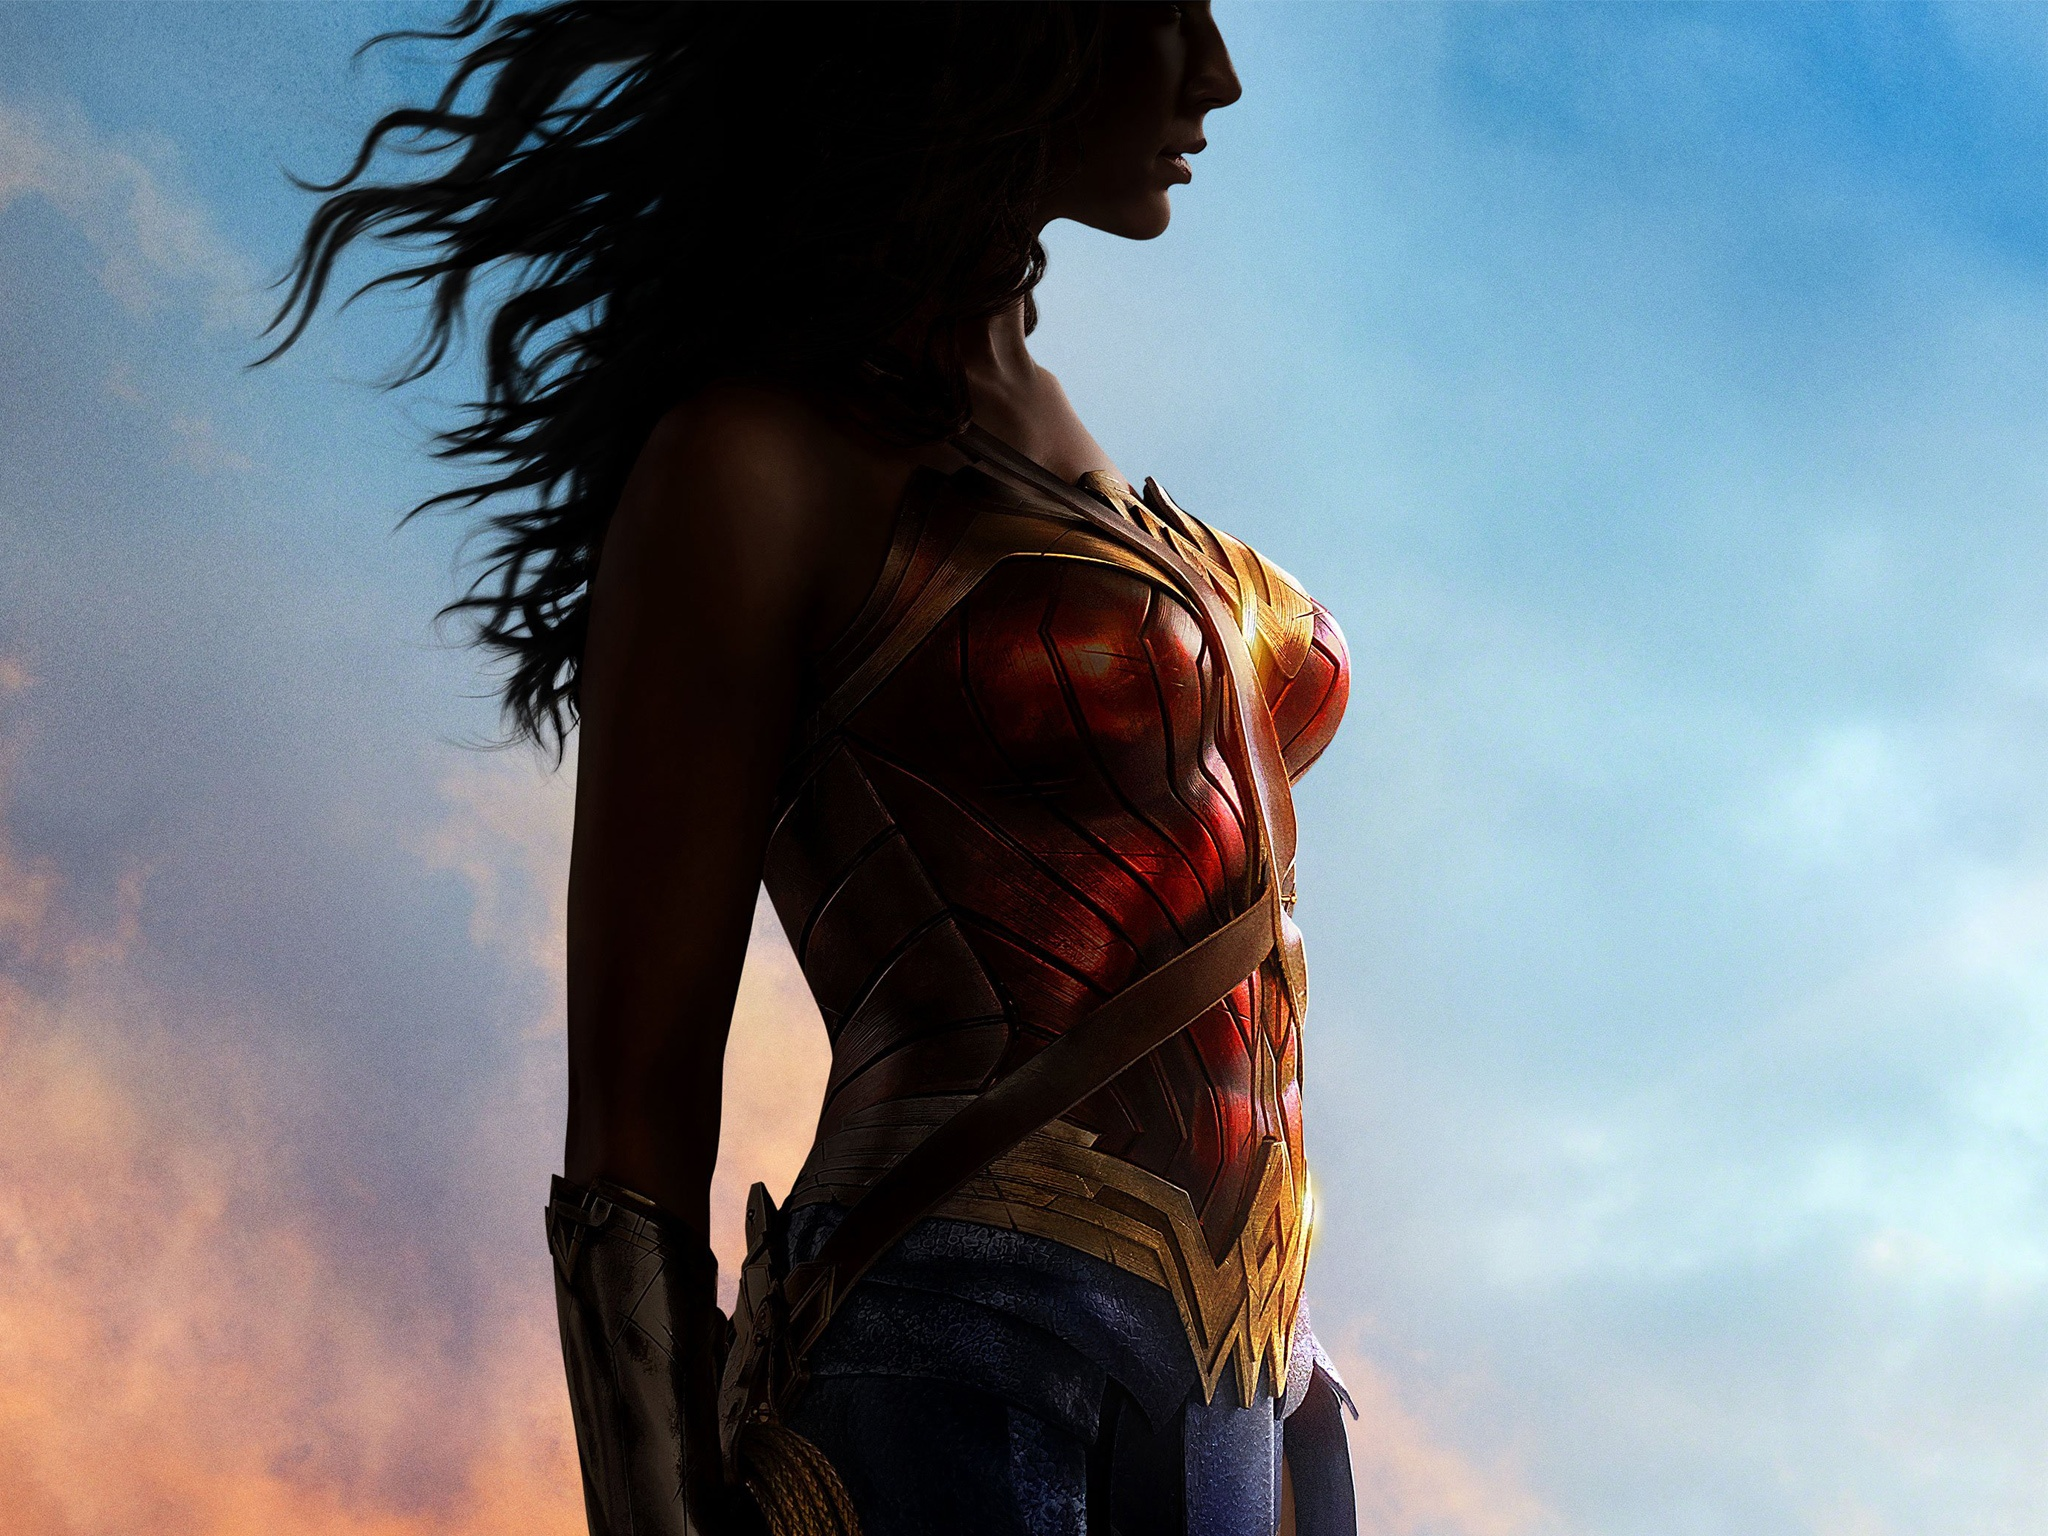 2017 Wonder Woman Wallpapers In Jpg Format For Free Download